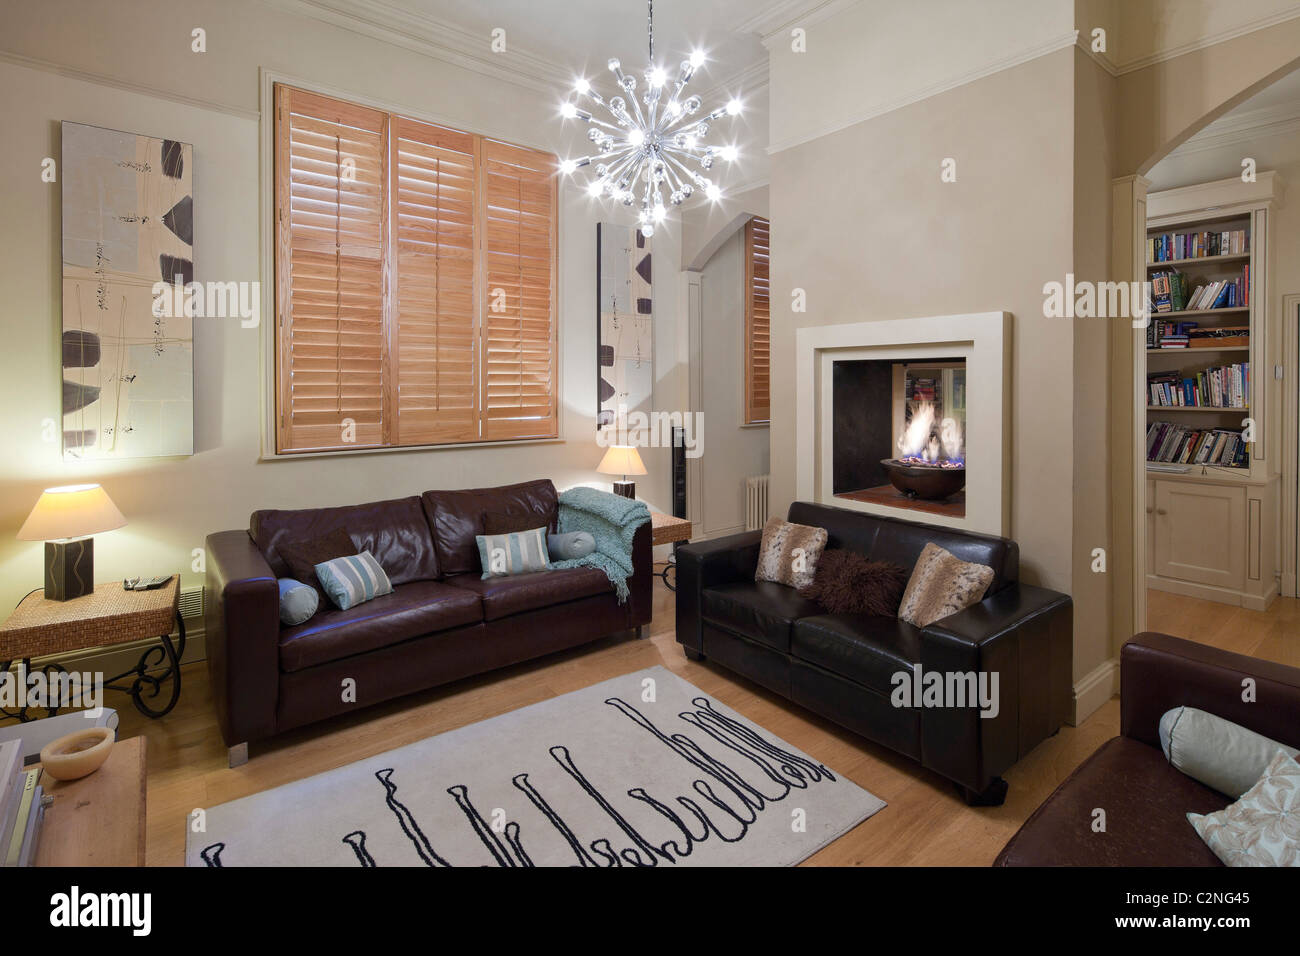 Neutral family sitting room with wooden floor, wooden shutters & leather sofas - Stock Image